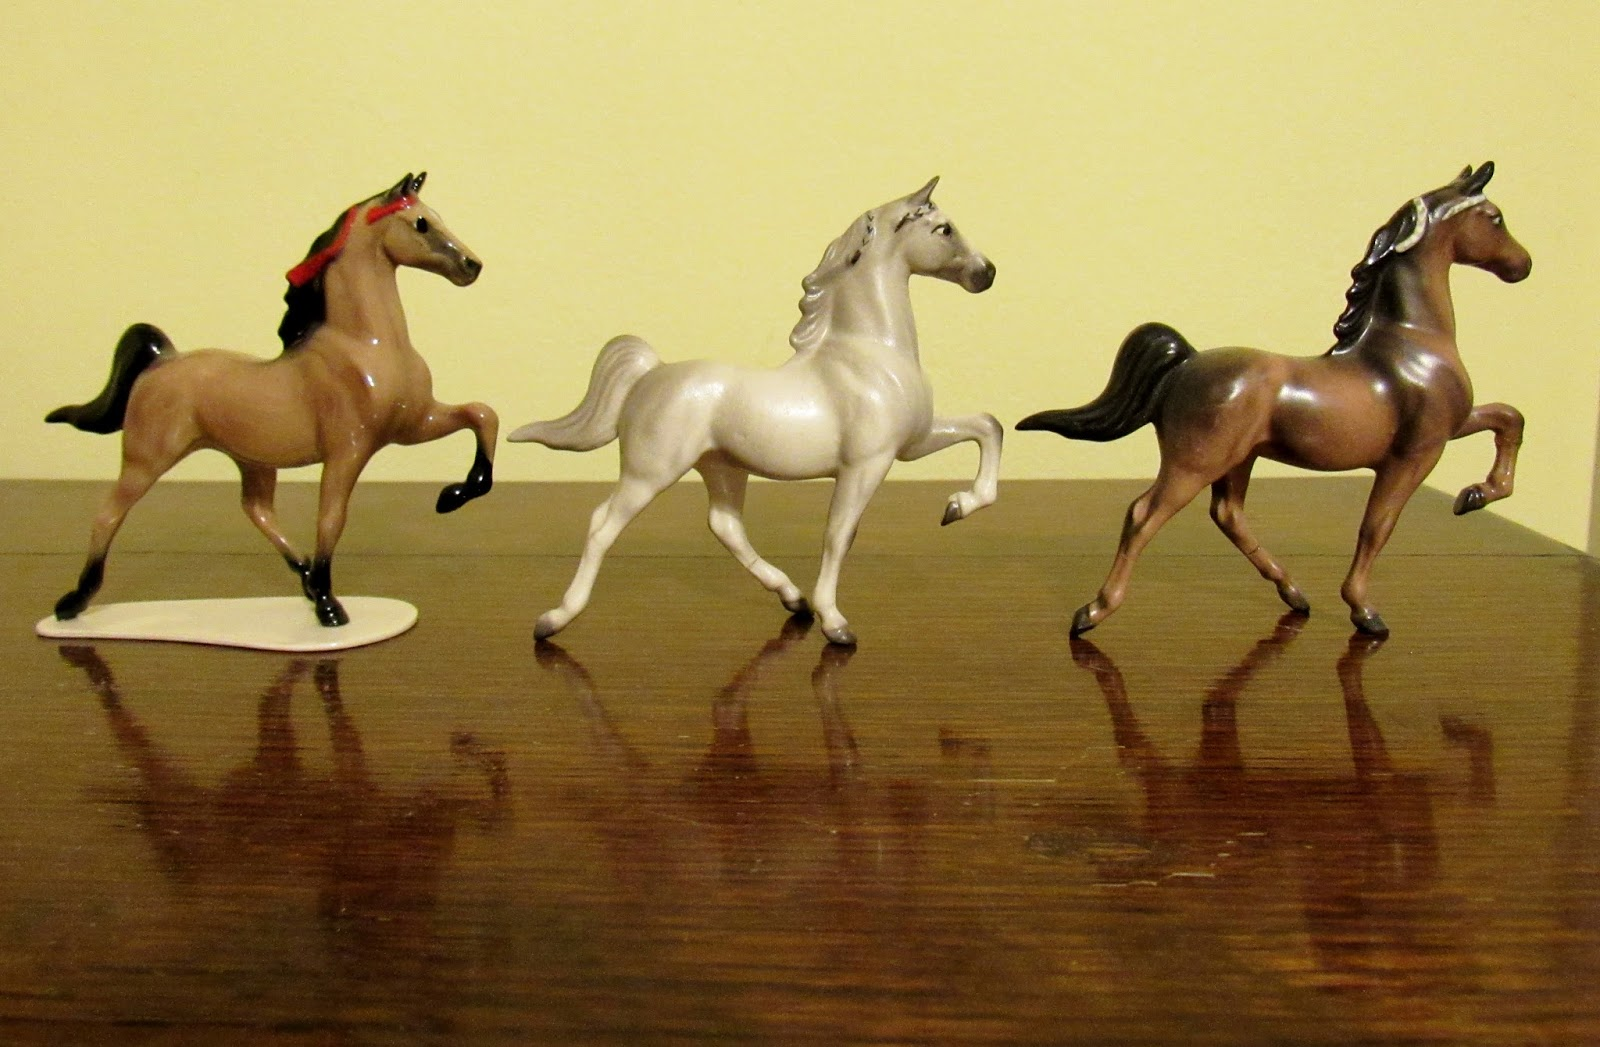 """Buckskin Horse Figurine With Baby Foal Small Tan Horse Statue 2.5/"""" Tall"""